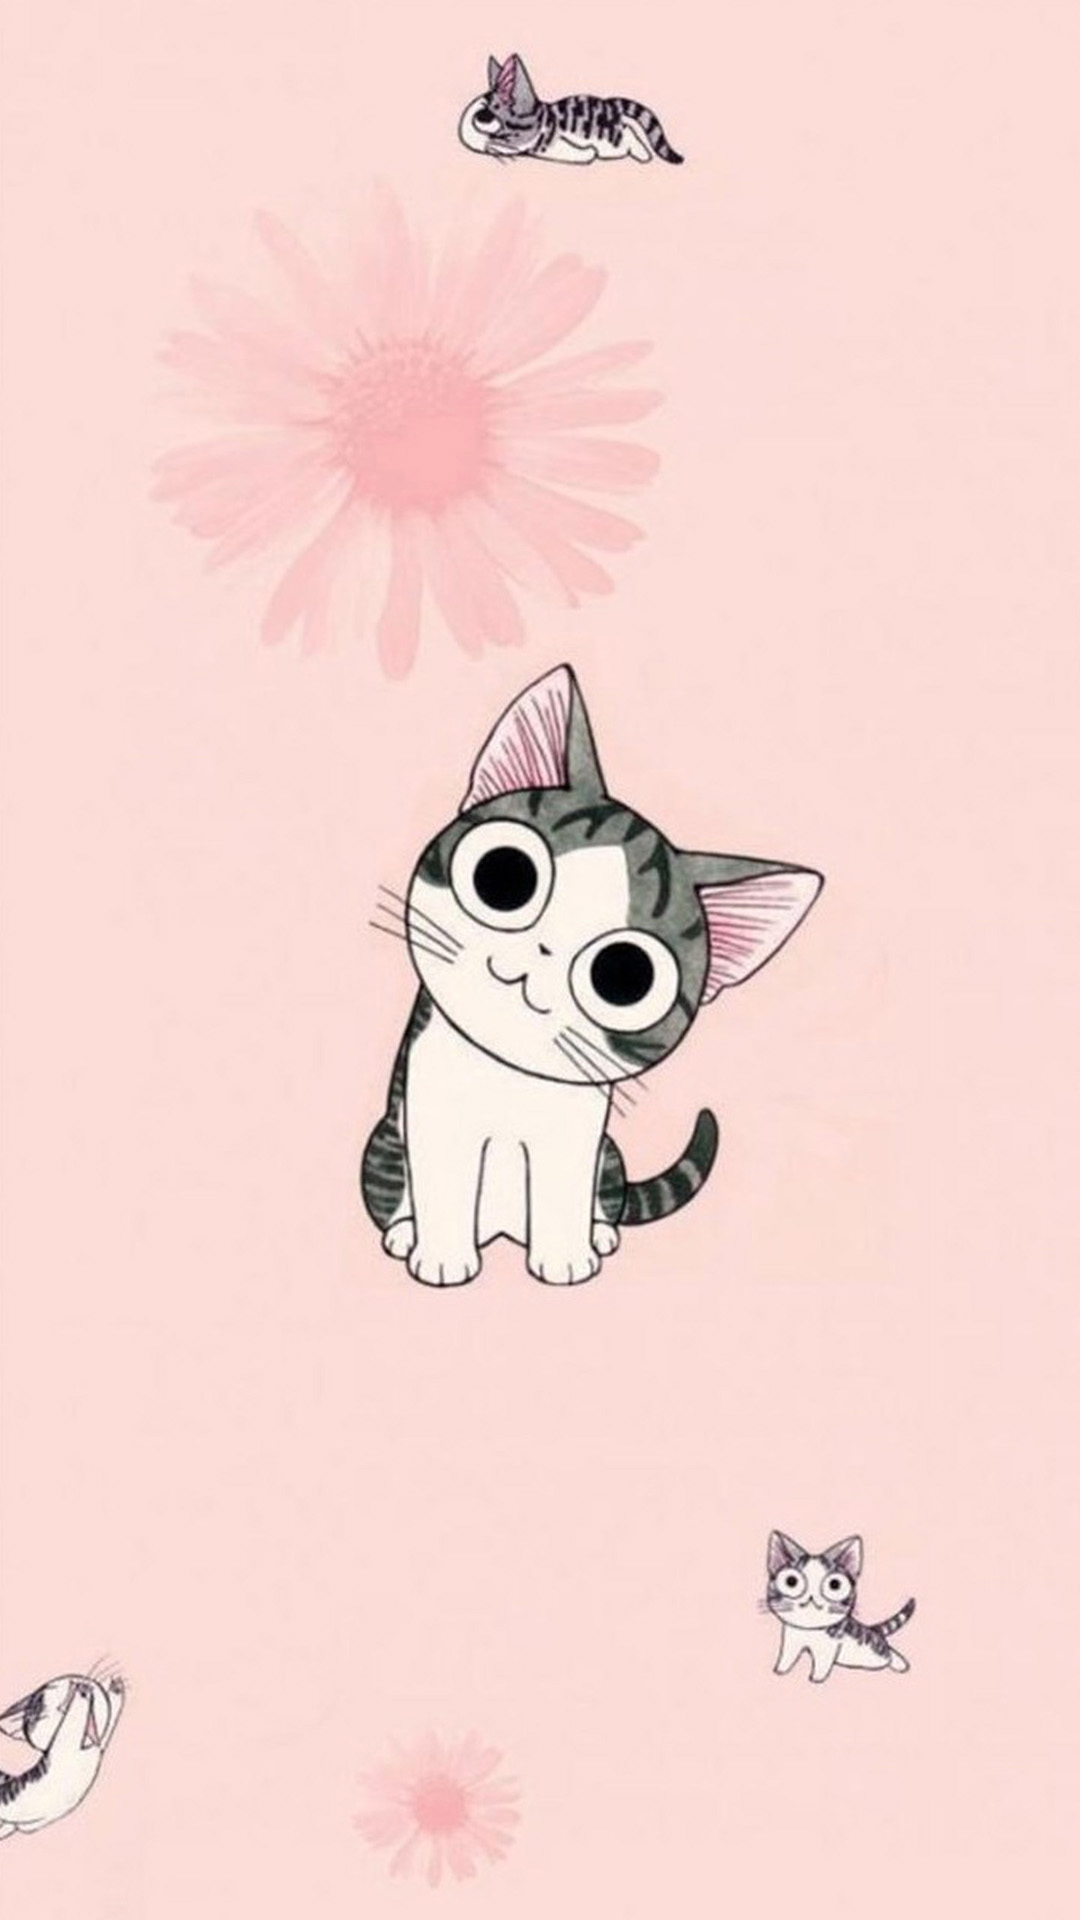 Cute cartoon cat wallpaper wallpapersafari - Cat wallpaper cartoon ...